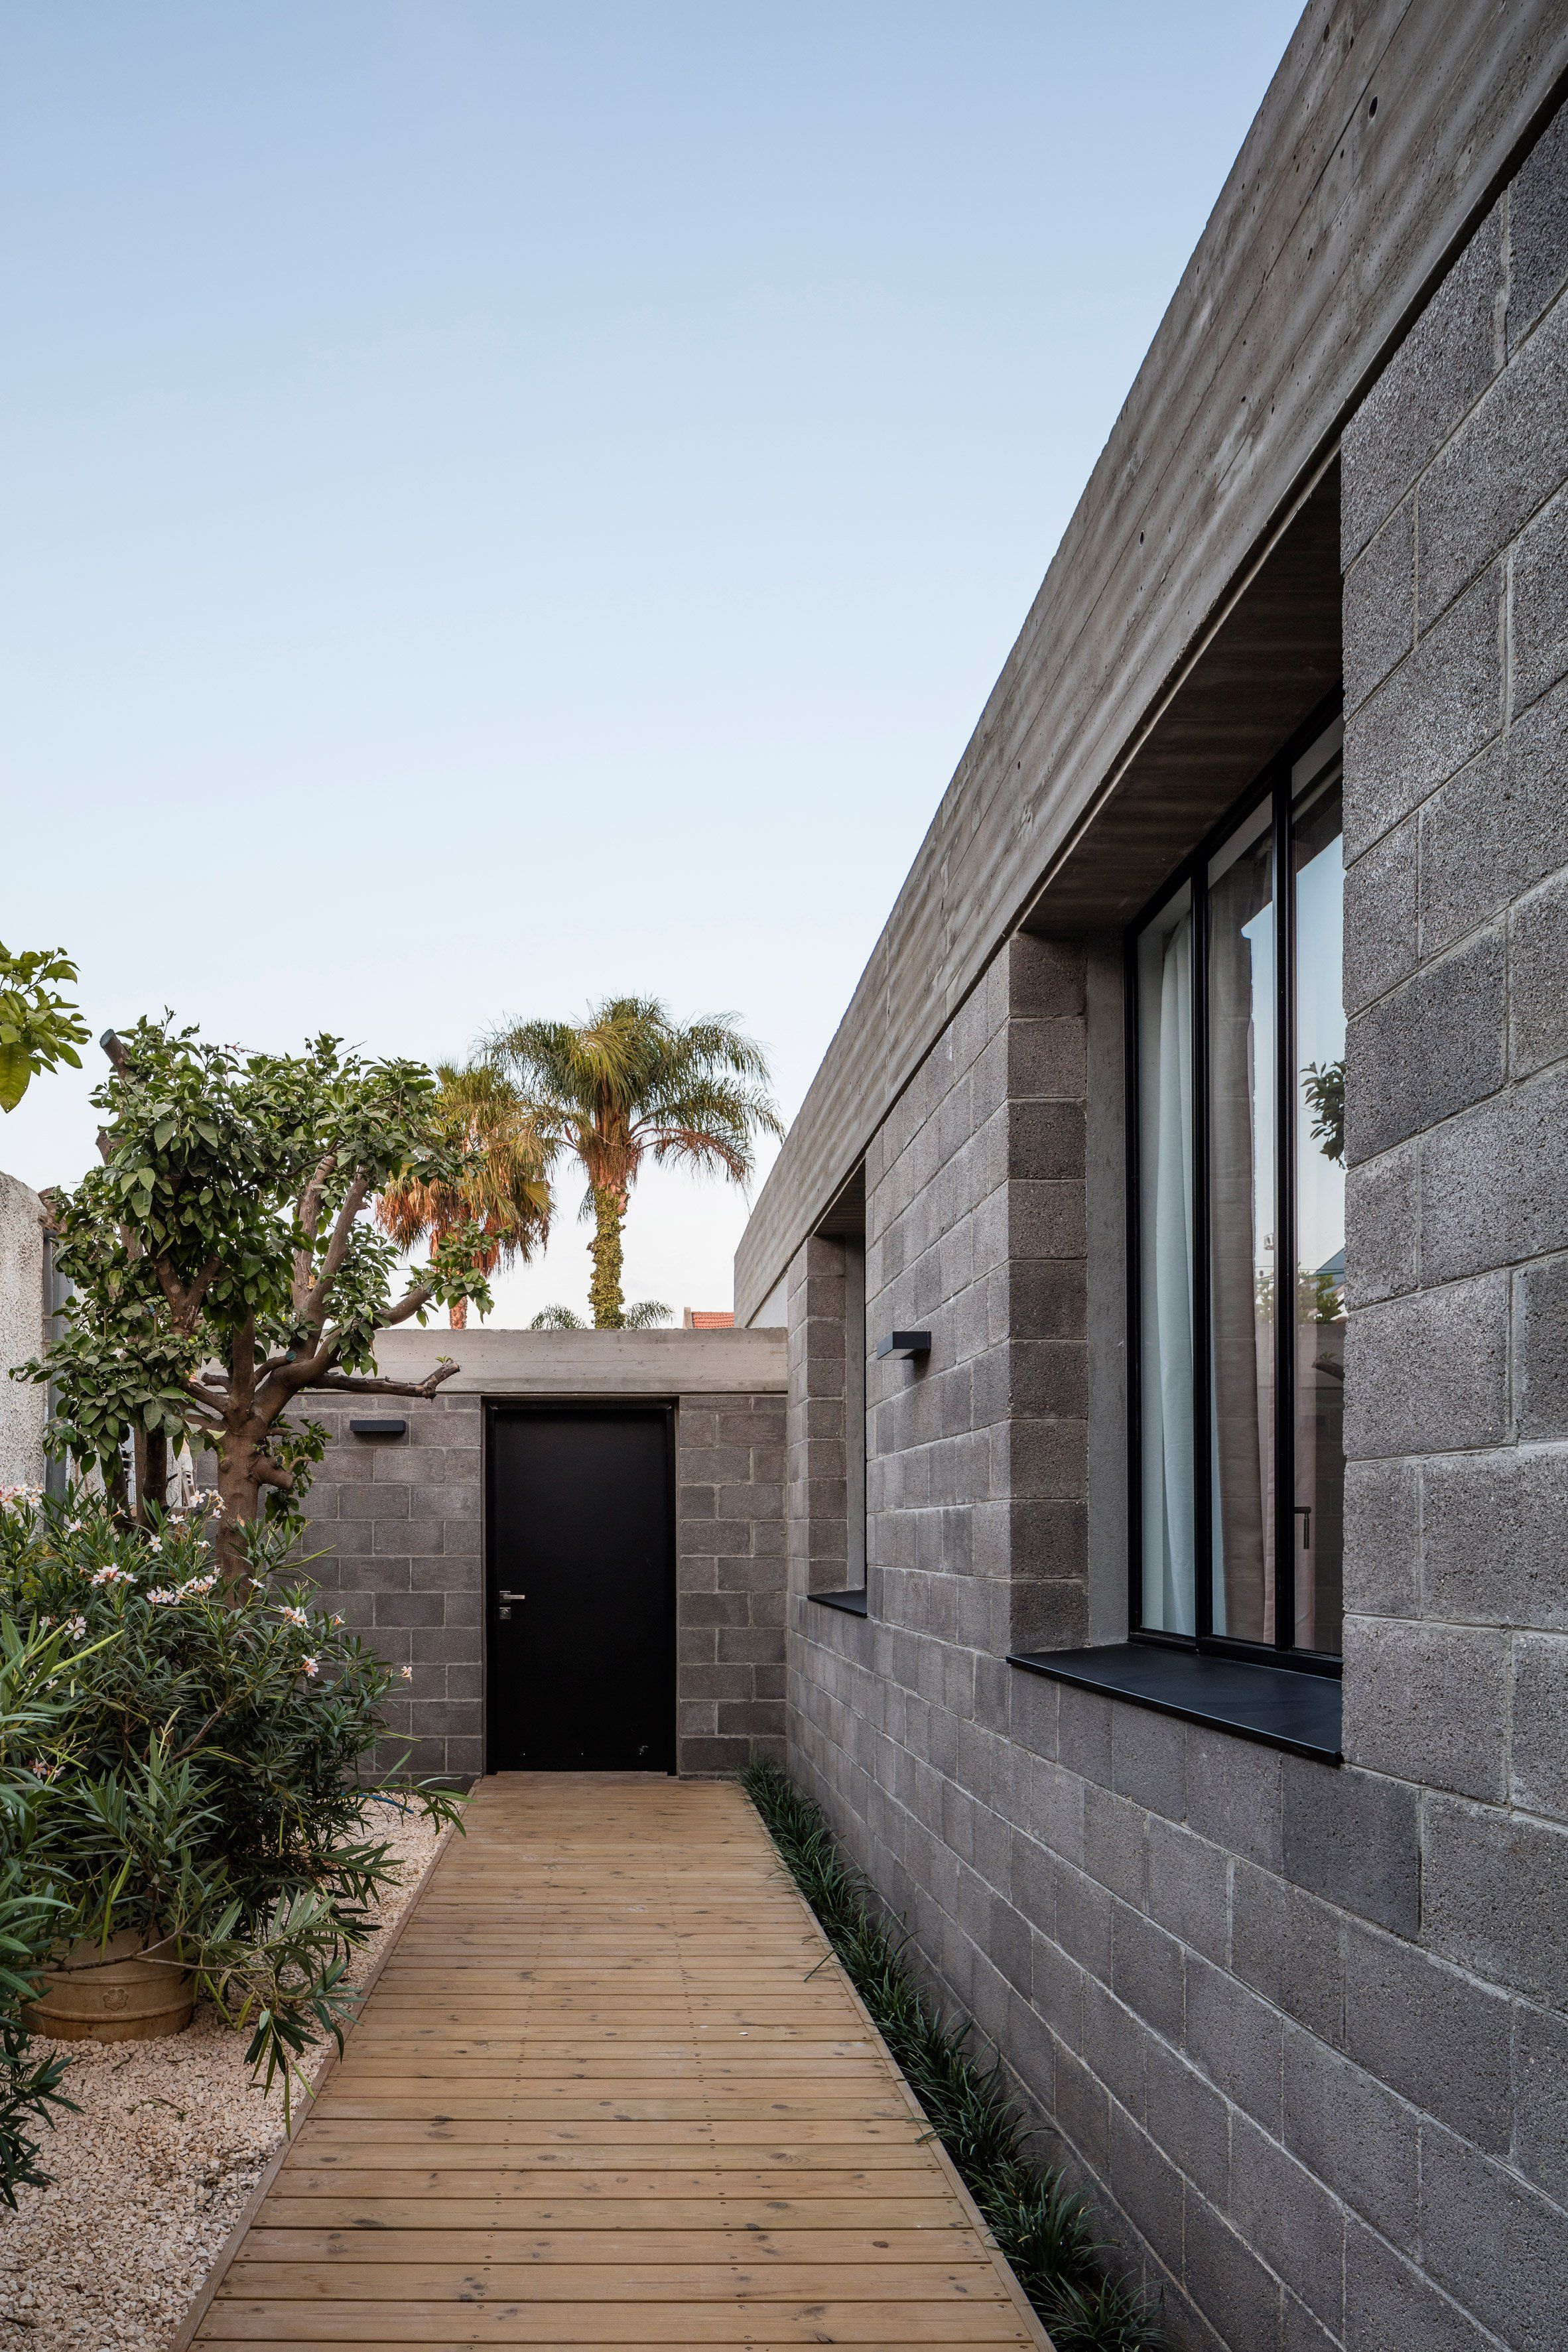 Israeli Architect Couple Use Concrete Blocks To Build Themselves A Home Among Fruit Trees Cement House Cinder Block House Concrete Houses